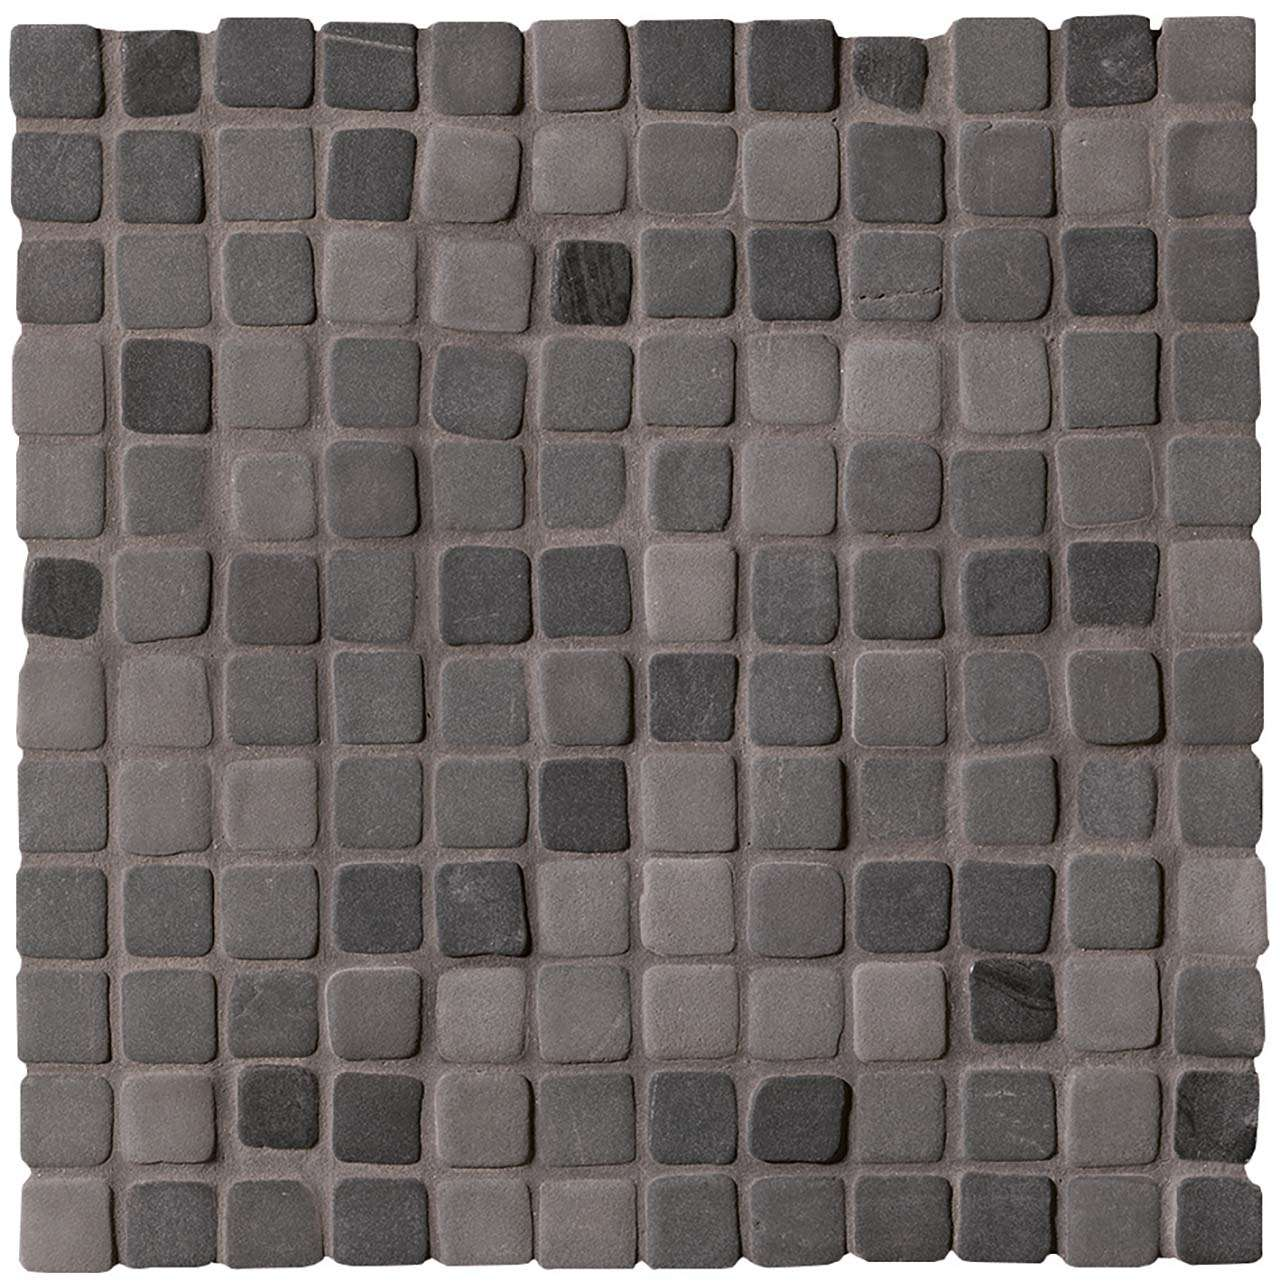 Fap Nord Smoke Solid Color Mosaico Matt 30x30